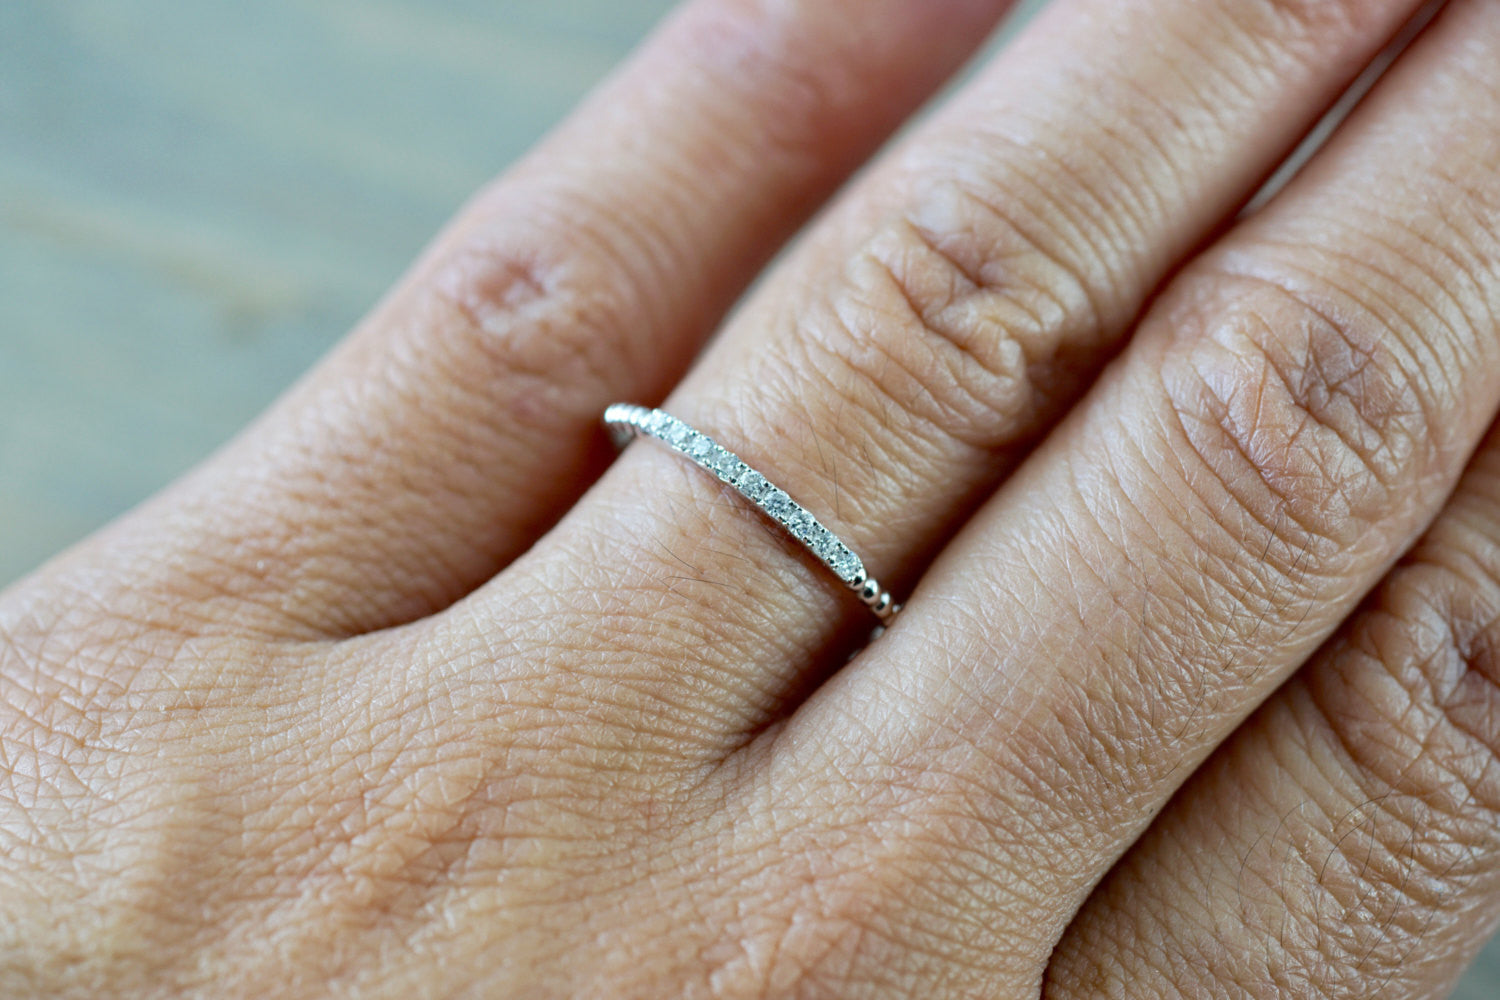 14kt White Gold Thin Diamond Ring Band Wedding Engagement Stack Dainty